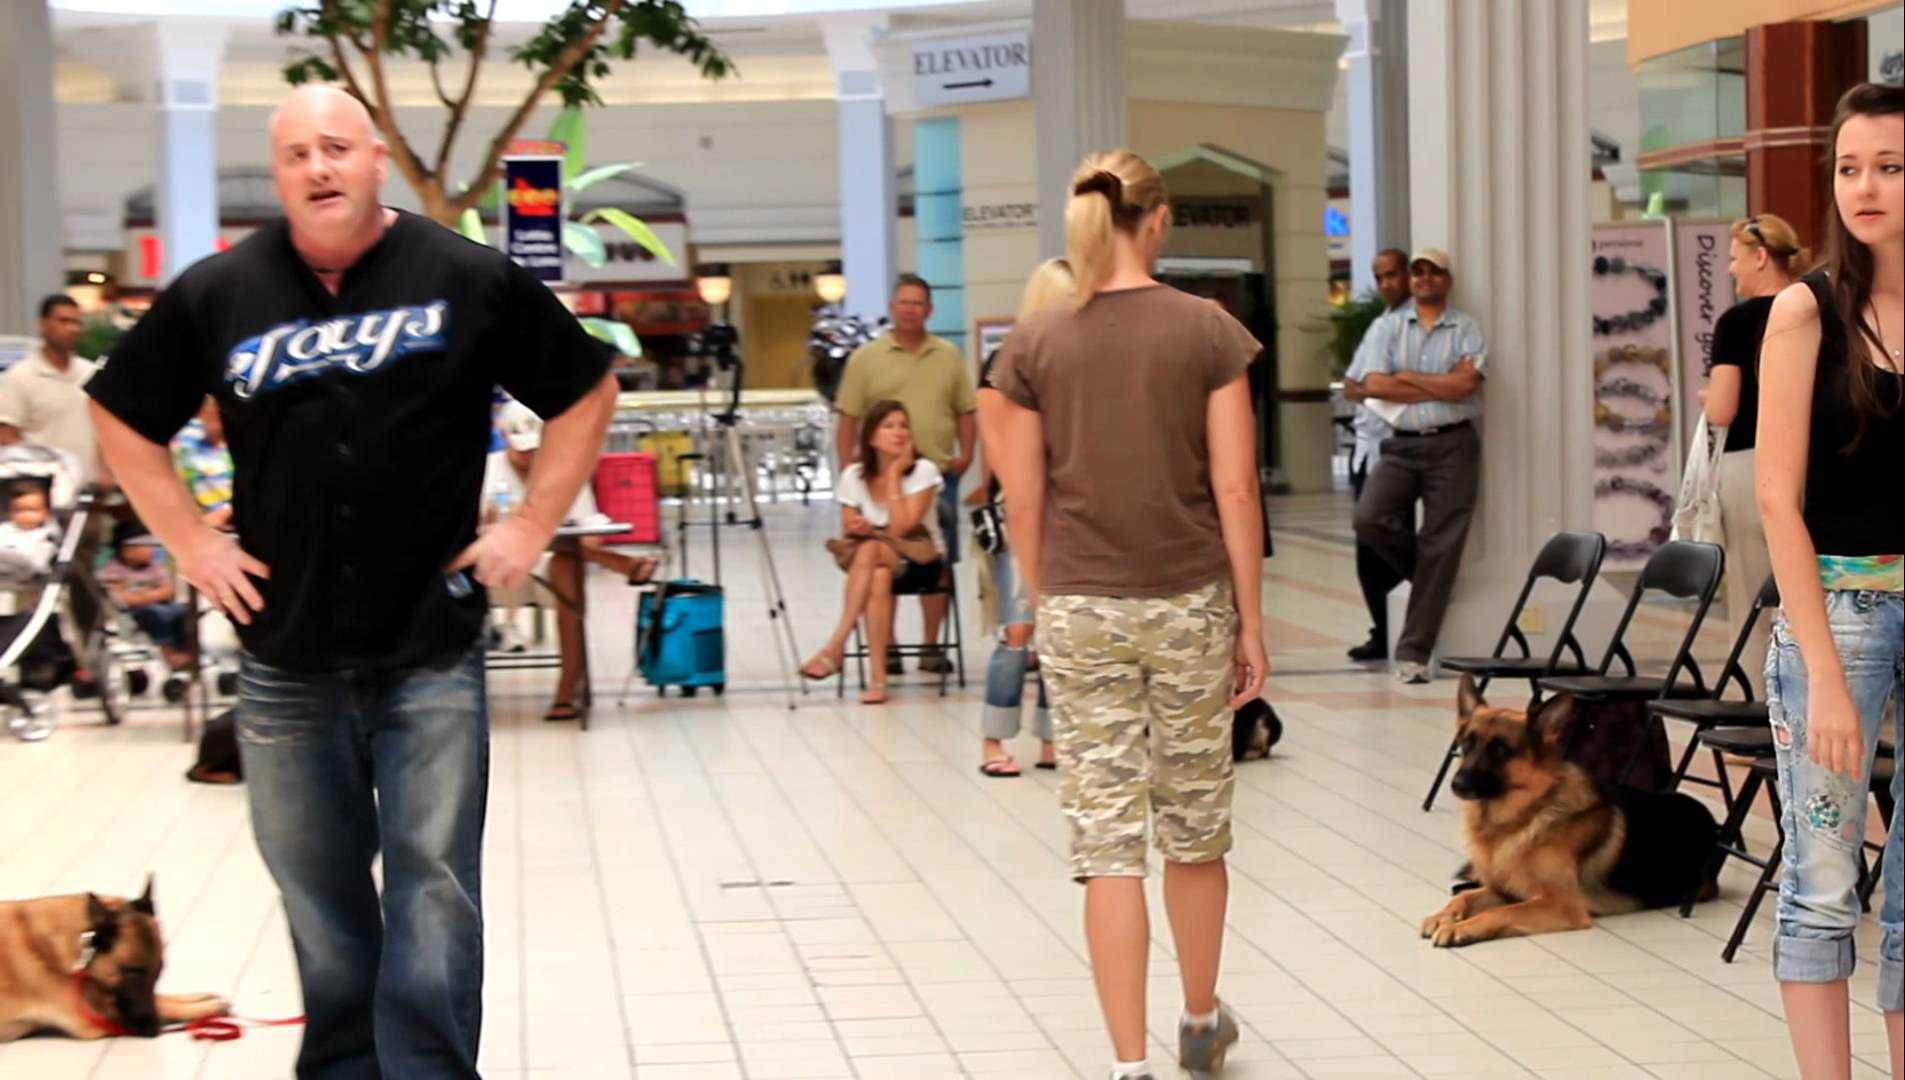 BEYOND THE LEASH K9 DOG OBEDIENCE SHOW IN A LOCAL MALL part 1